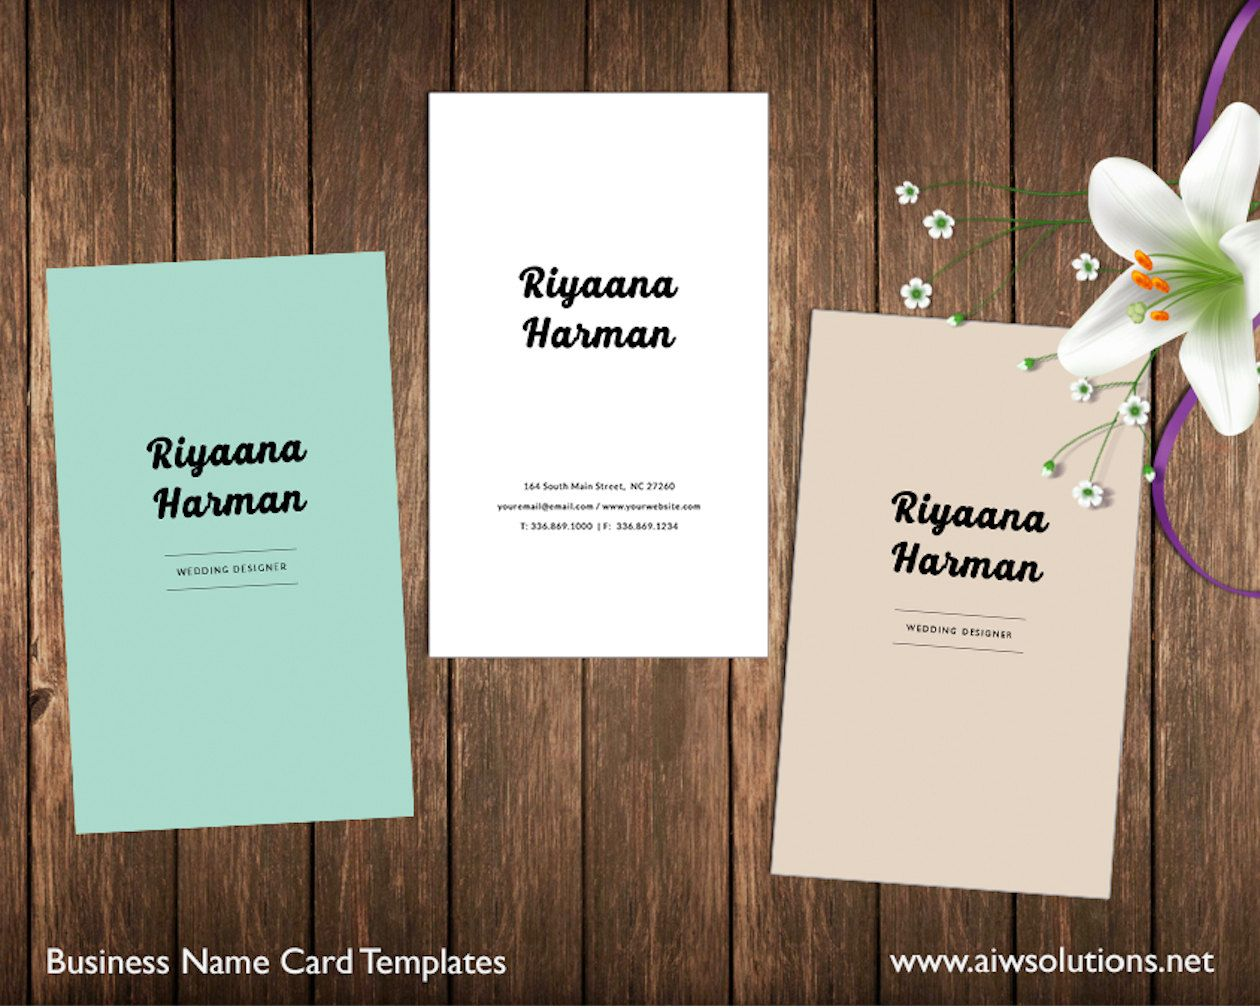 Simple Business Card Template Name Card Template By Aiwsolutions - Diy business card template